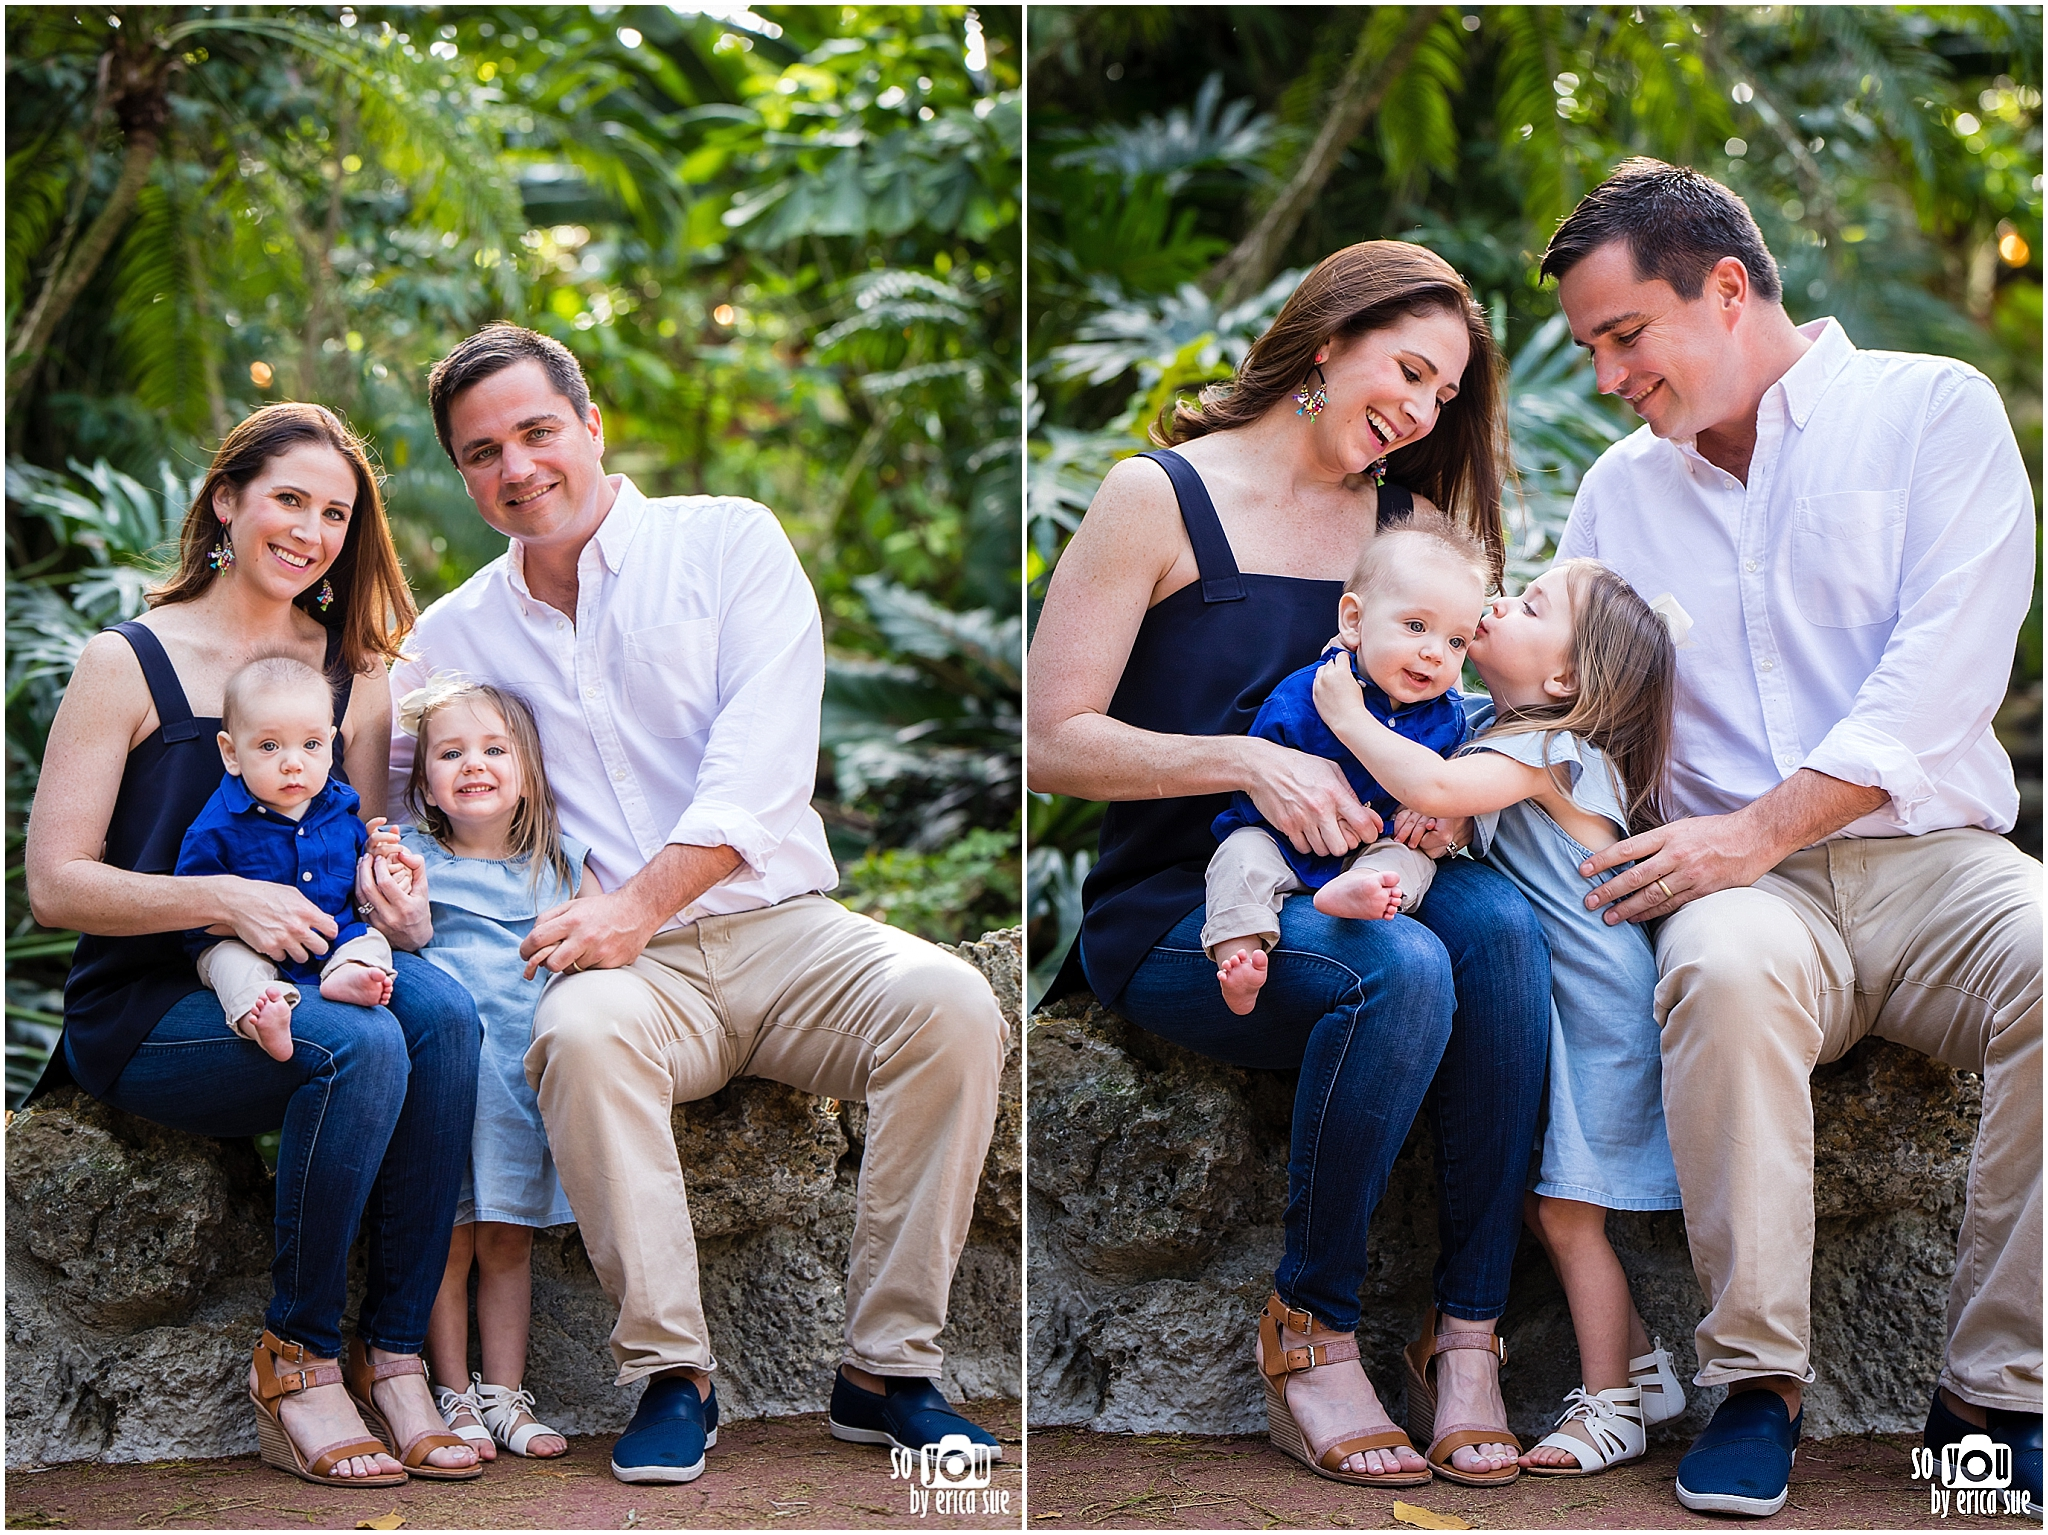 pinecrest-gardens-lifestyle-family-photography-miami-fl-0735 (2).jpg